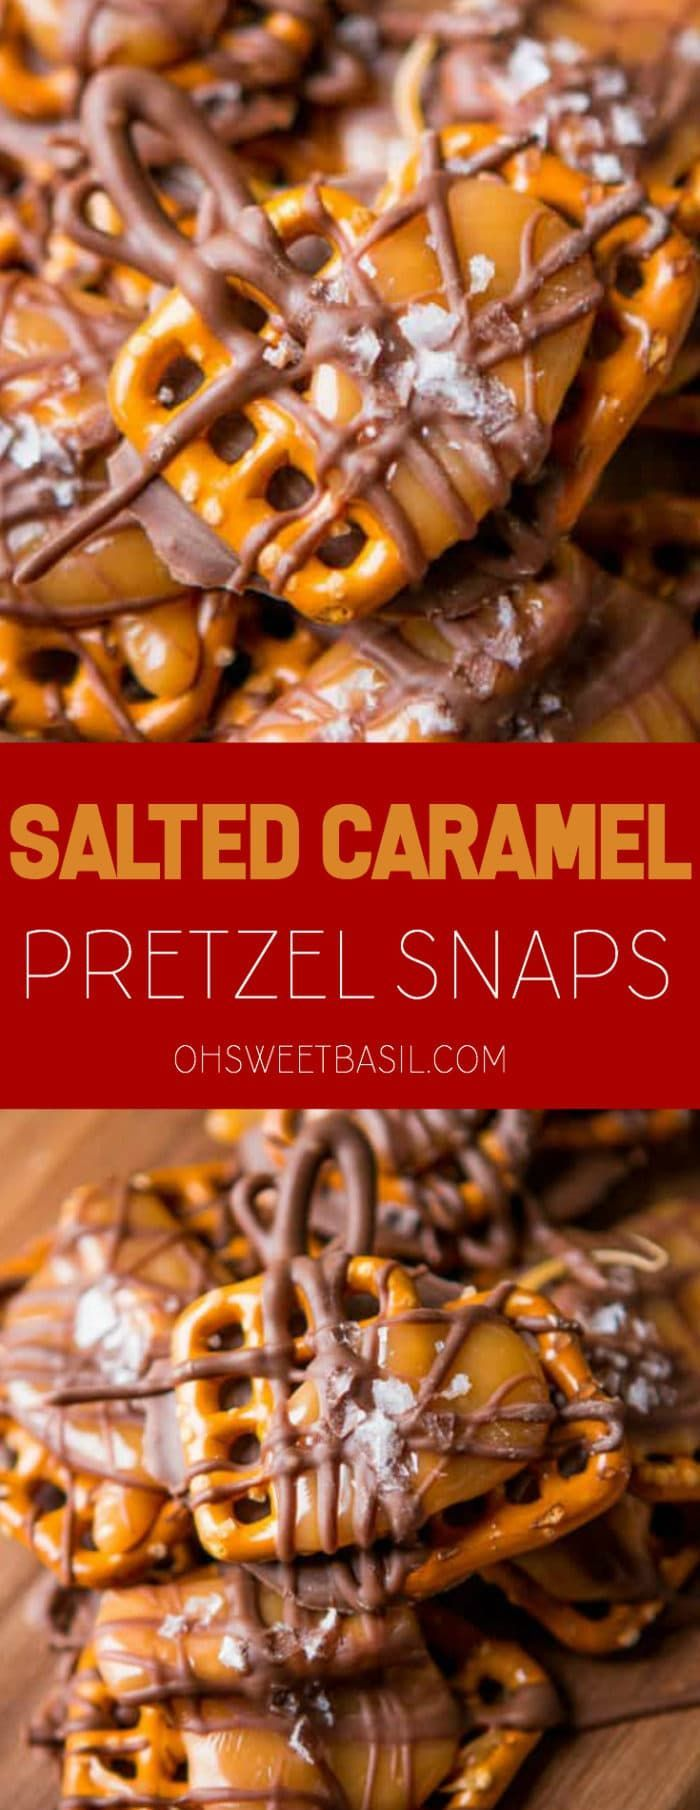 We cannot stop munching on these salted caramel pretzel snaps! They only take a couple of ingredients and no time at all to make! cannot stop munching on these salted caramel pretzel snaps! They only take a couple of ingredients and no time at all to make!